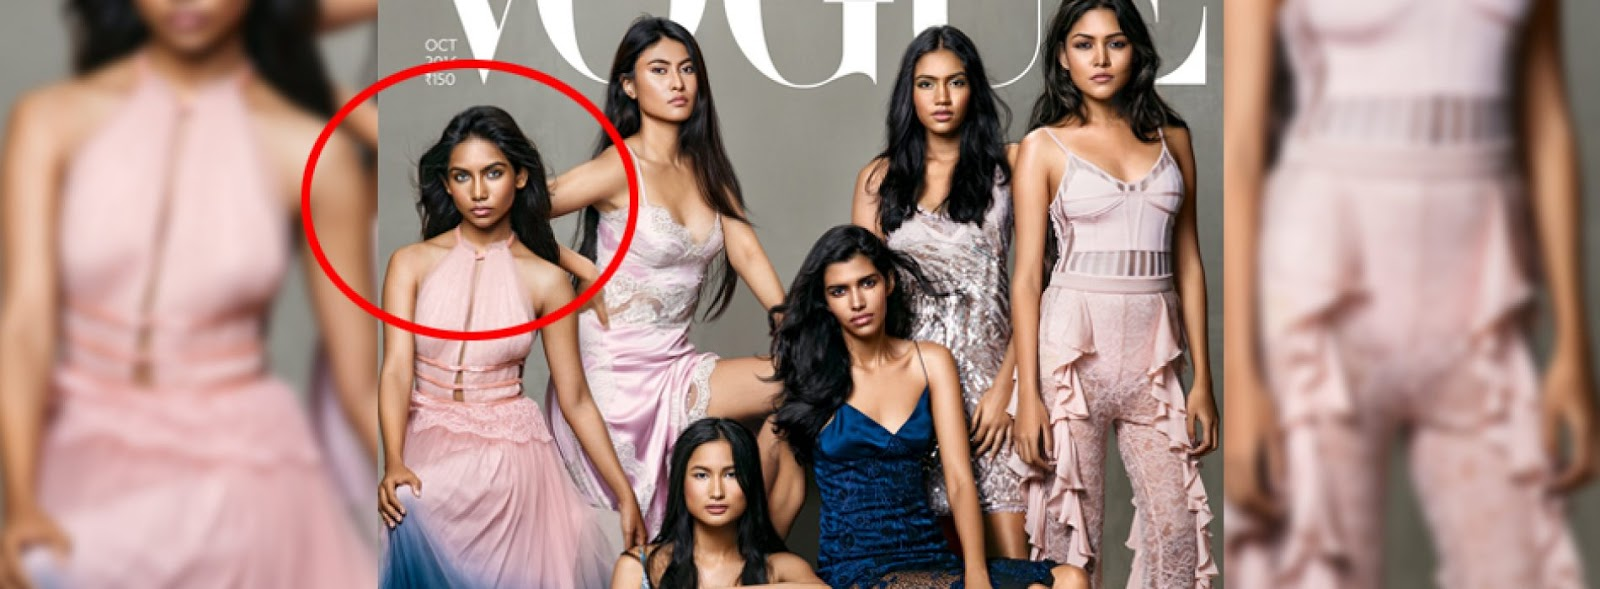 The Reason Why This Ex-Vogue Model Got Murdered Will Shock You! Read It Here!